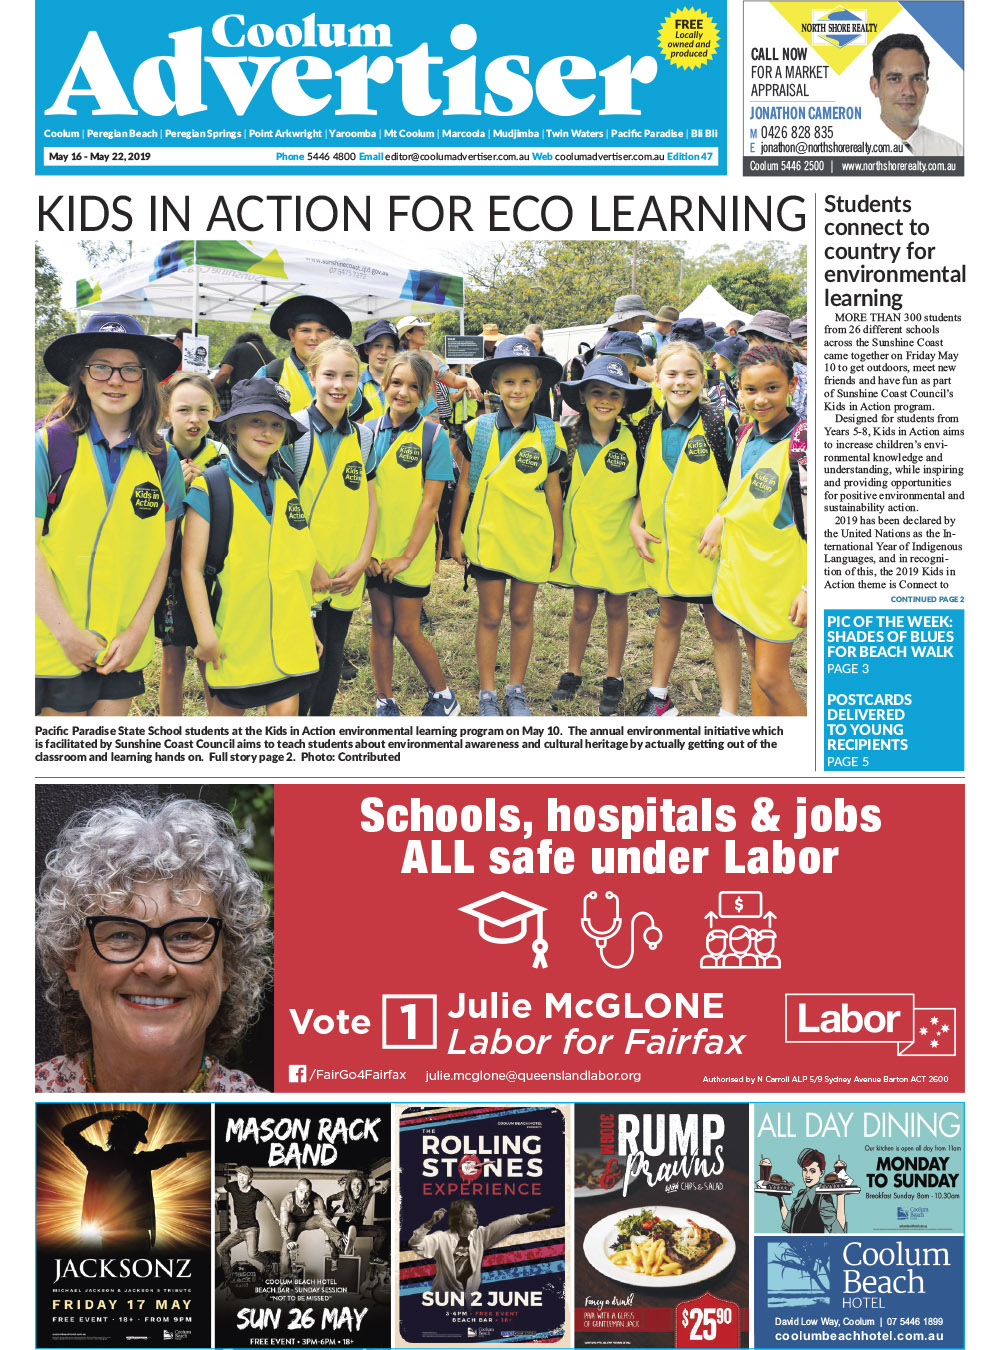 Coolum May 16-2019-issue47.indd